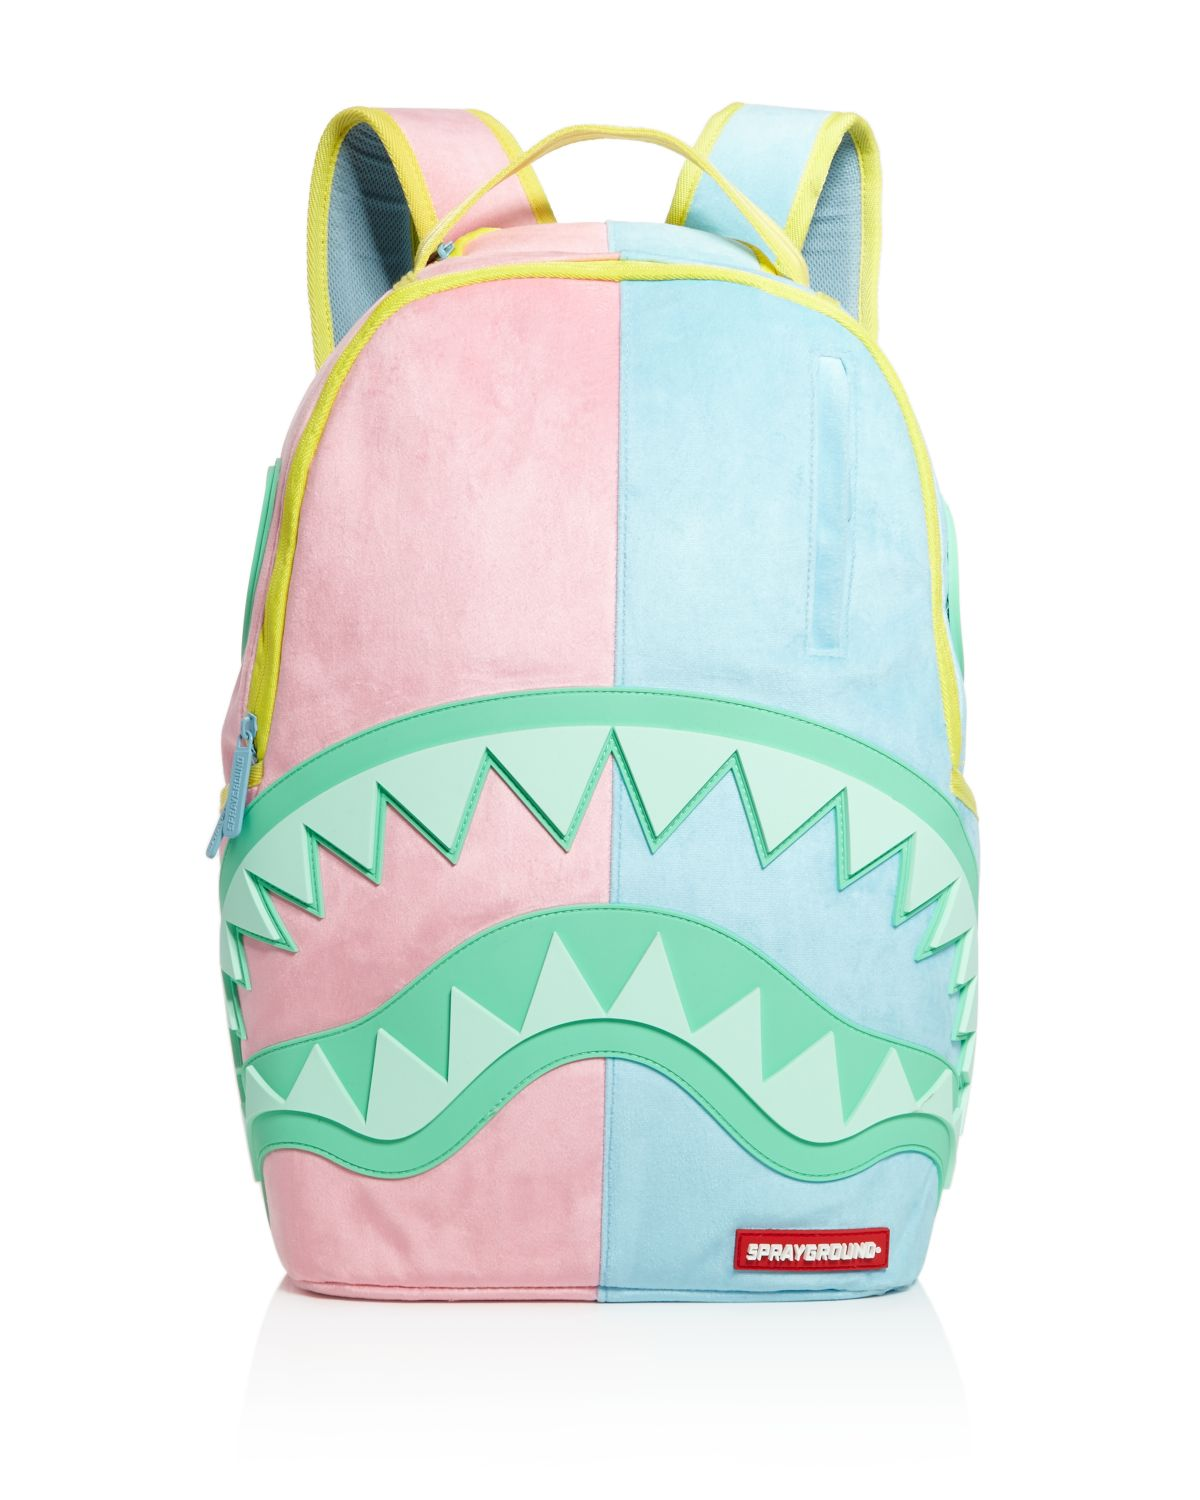 Unisex Saweetie Shark Backpack by Sprayground